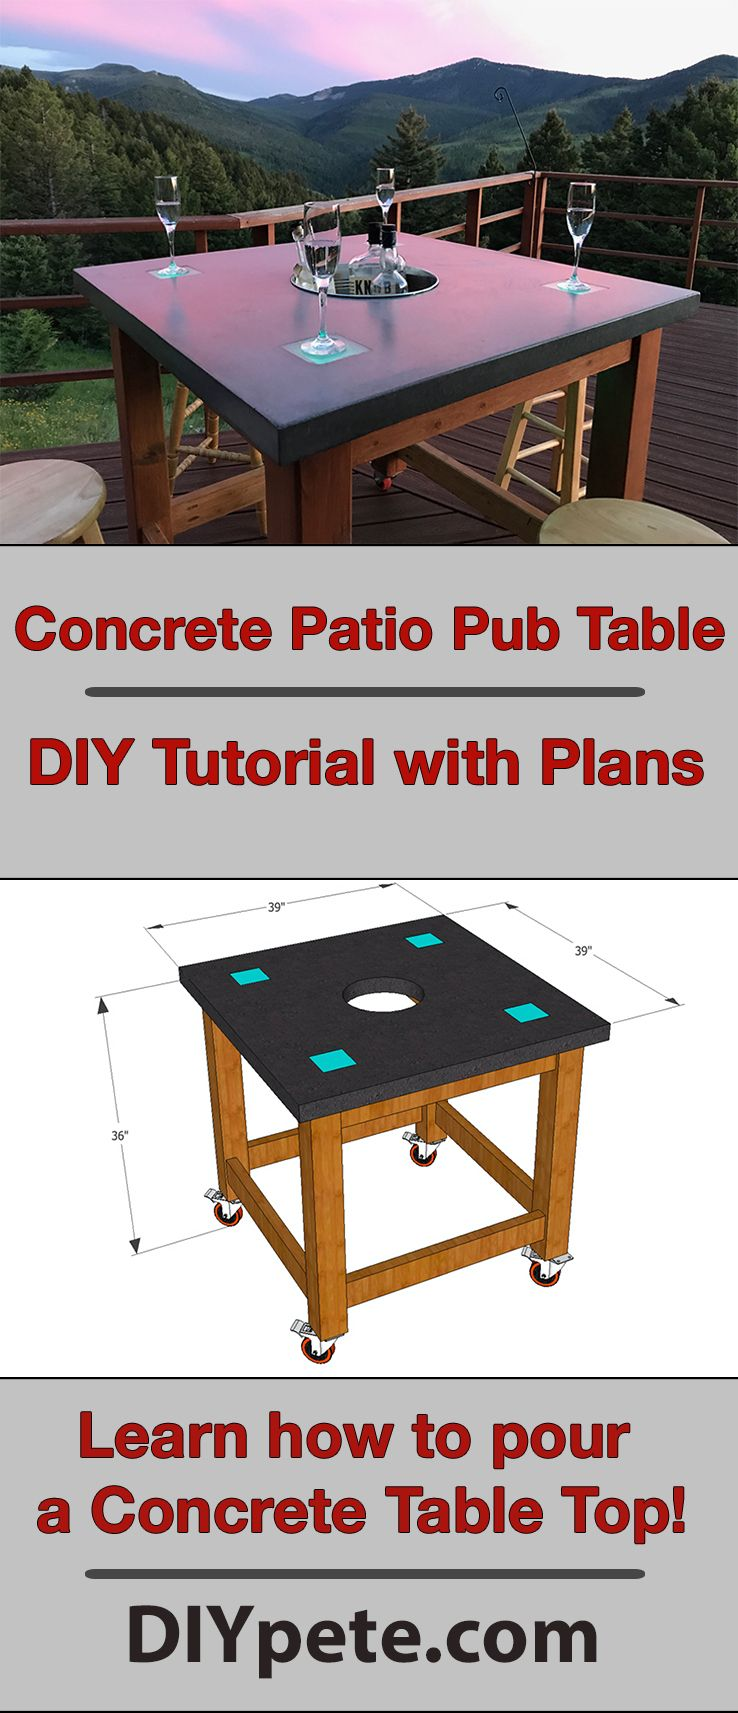 40 Diy Pete Video Tutorials Projects Diy Do It Yourself Projects